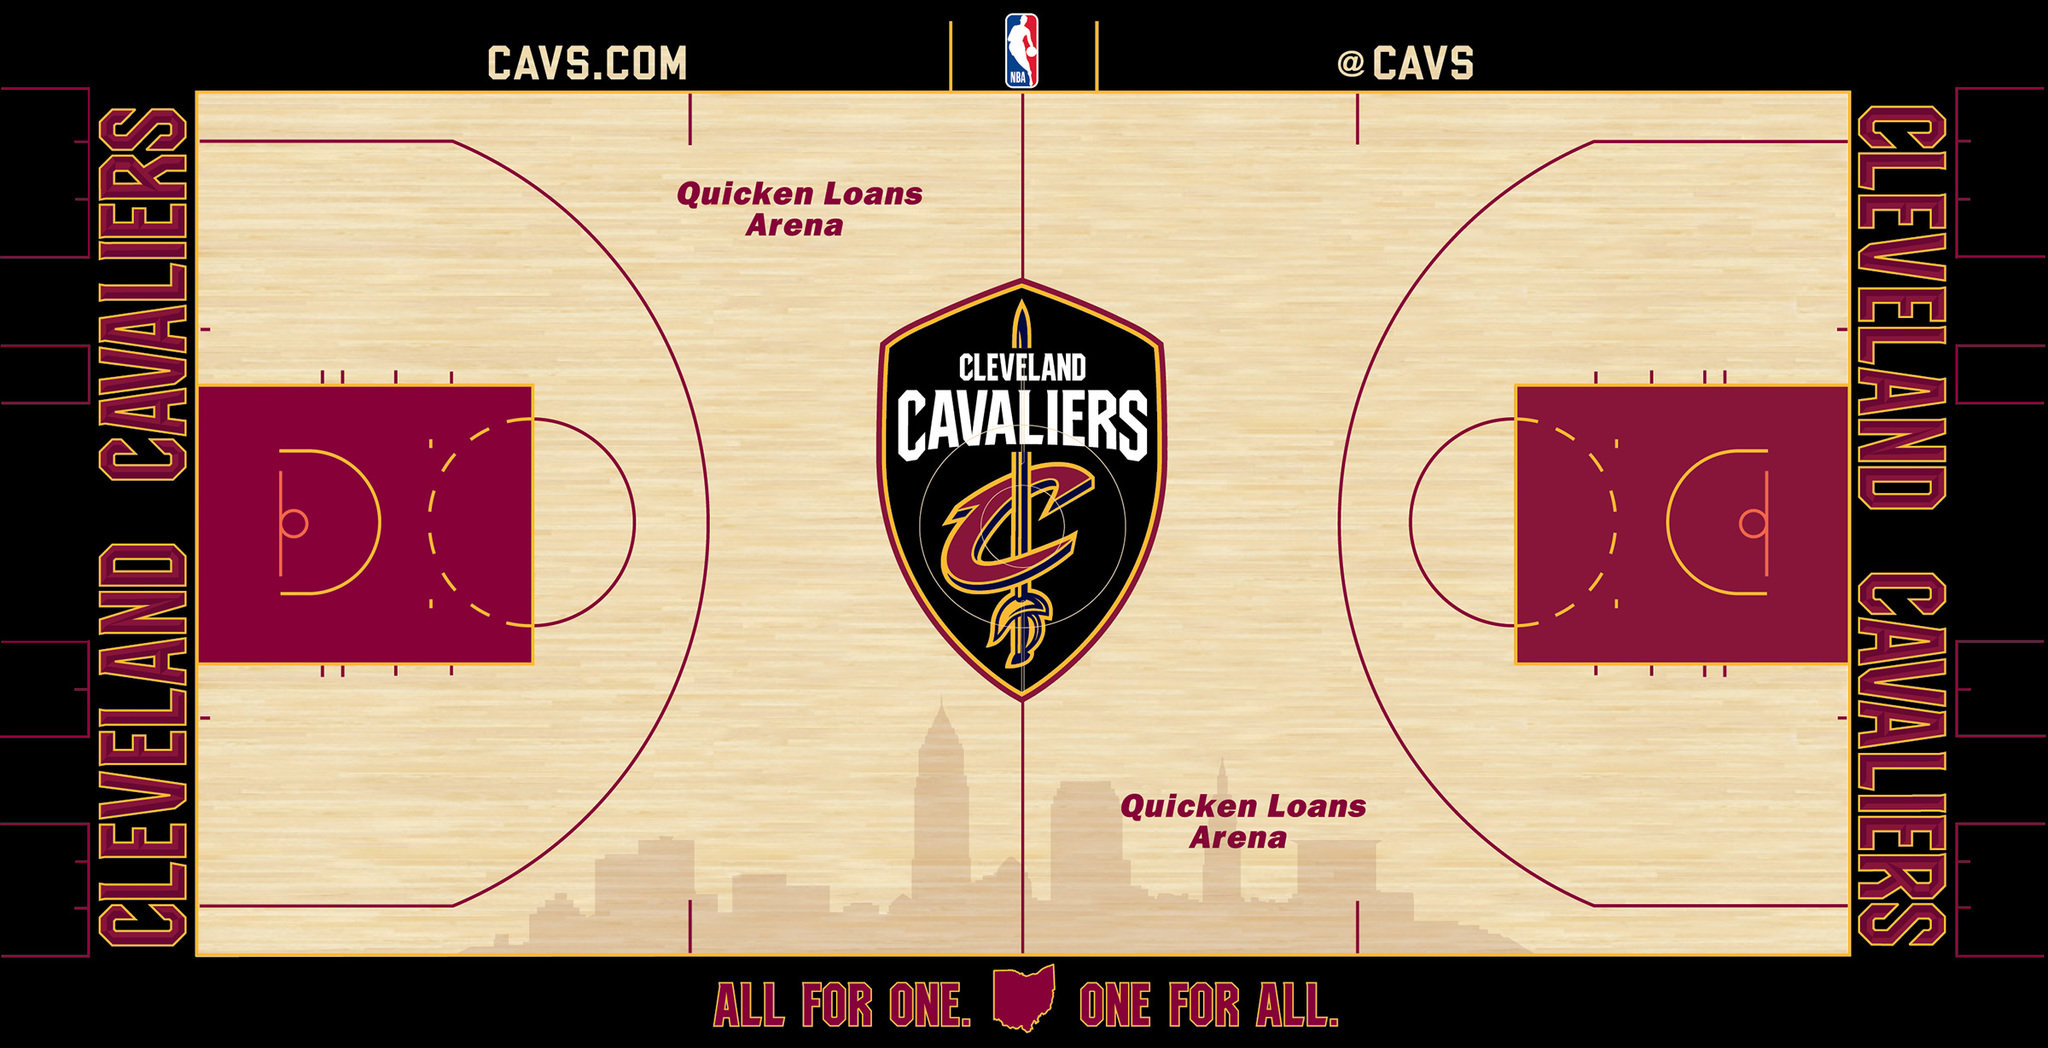 b9791207f0c A shaded silhouette of the Cleveland skyline is front and center on the  bottom half of the court represents the pride and excitement the Cavs bring  to the ...